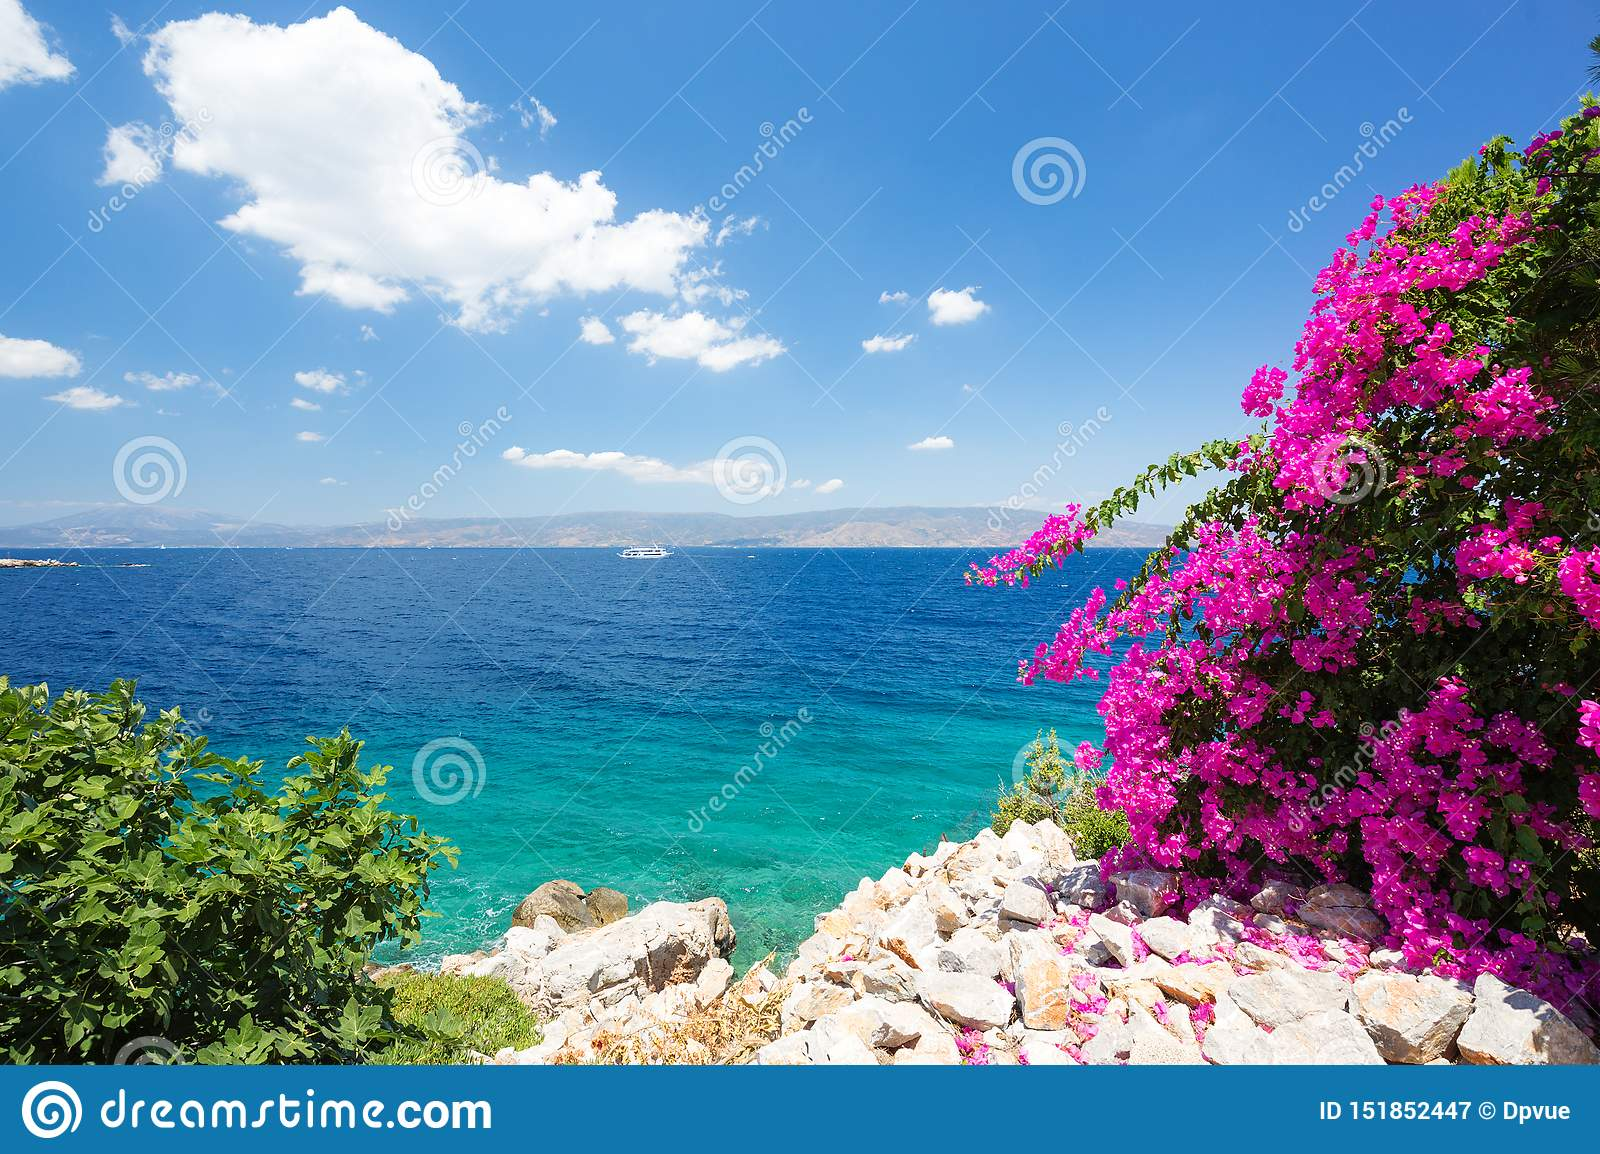 Mediterranean Landscape Blue Sky And Clear Waters With Beautiful